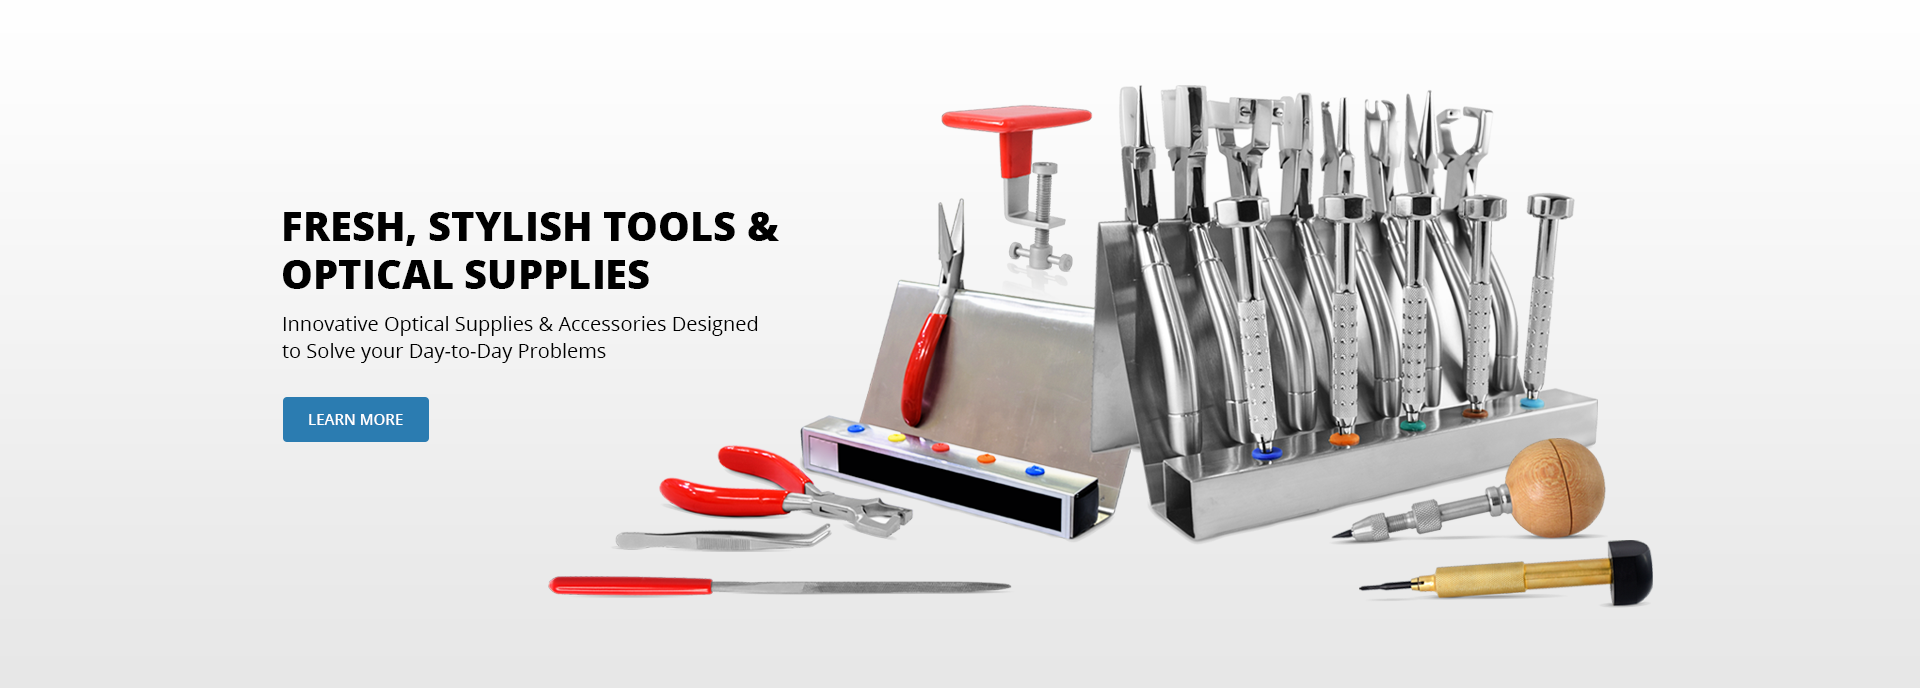 Fresh, stylish tools and optical supplies